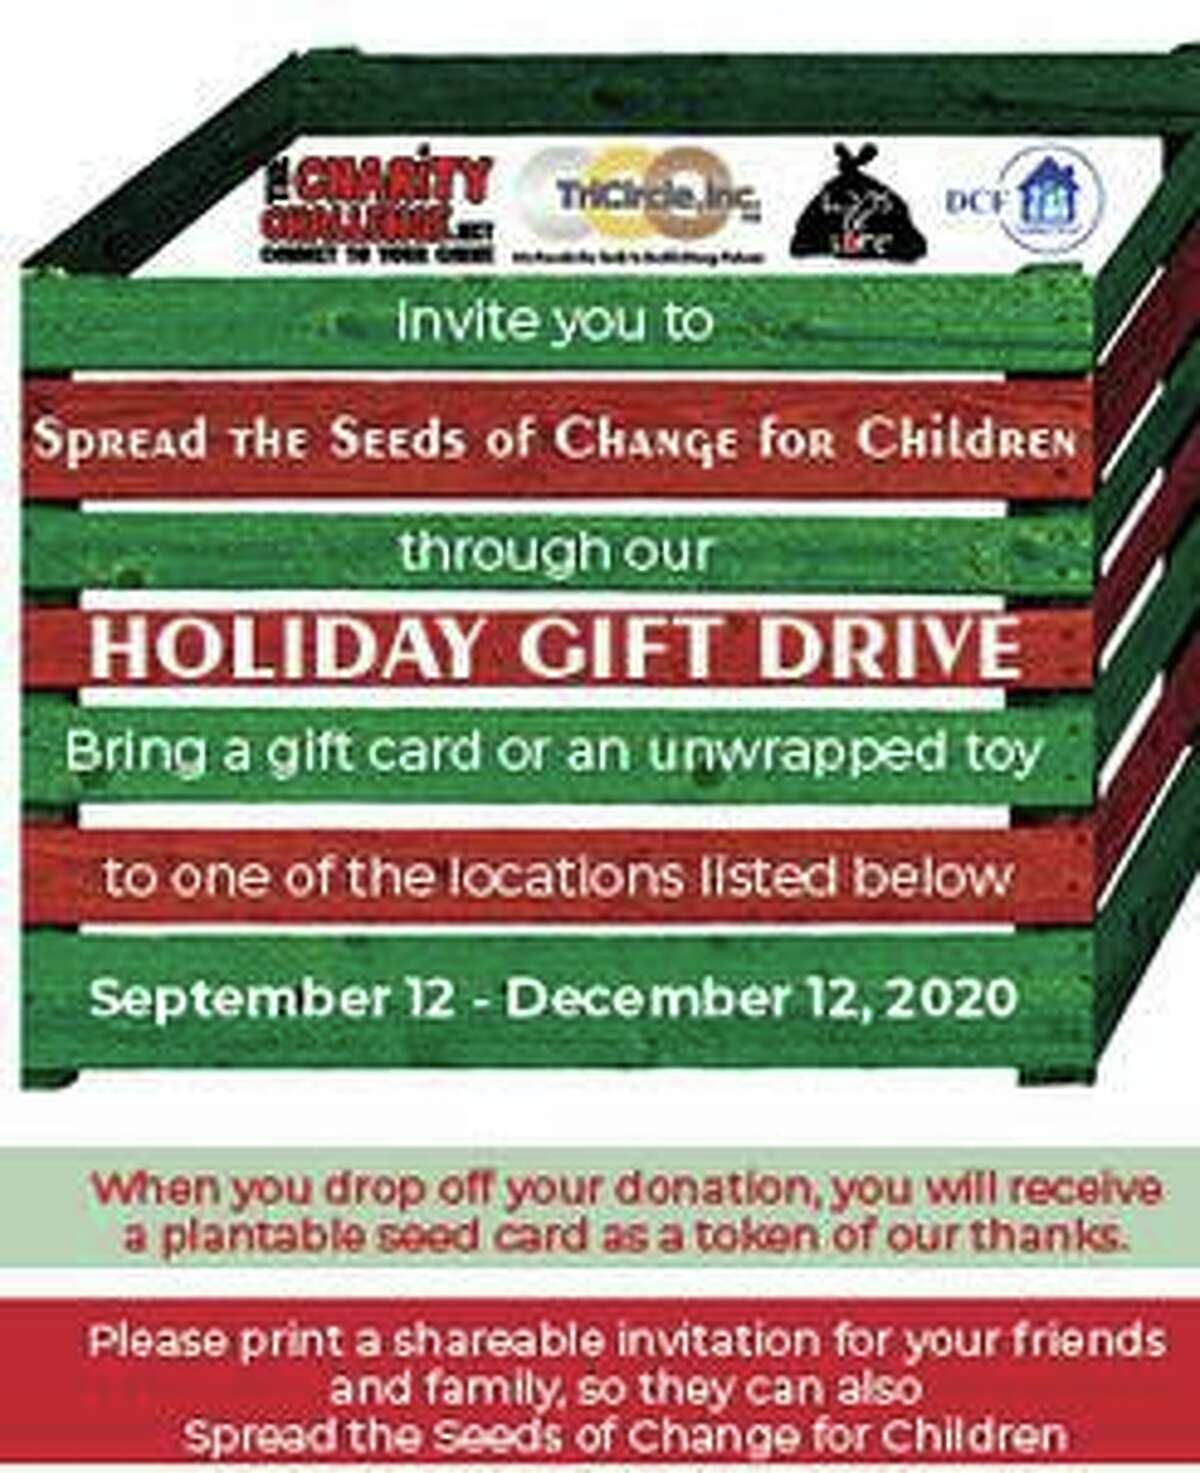 Seeds for Change is holding a gift drive and needs support to make it a success.